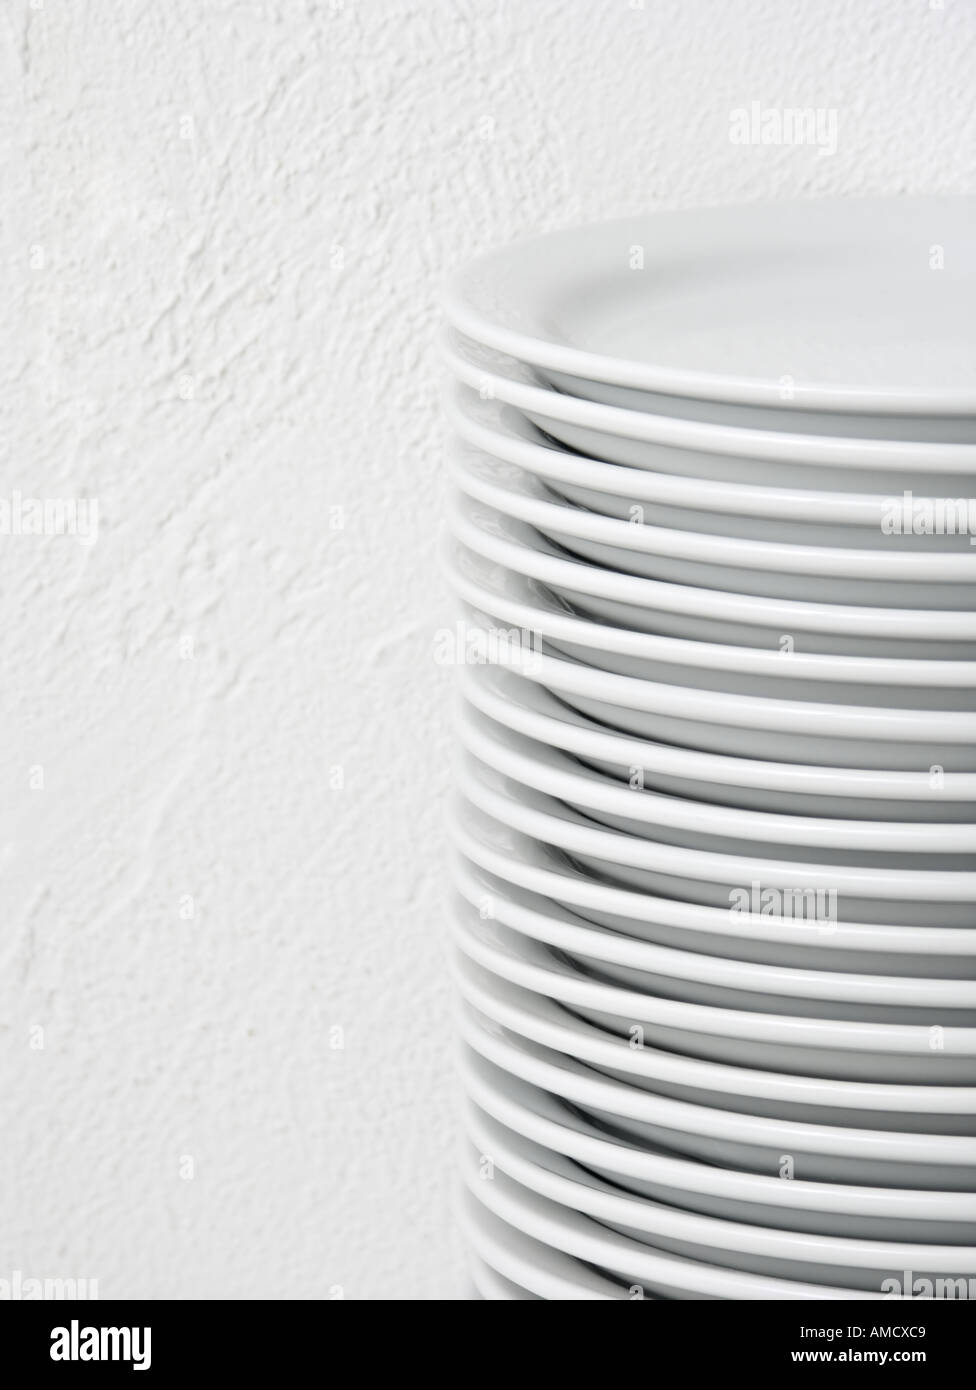 Stack of round white dinner plates on a white background - Stock Image